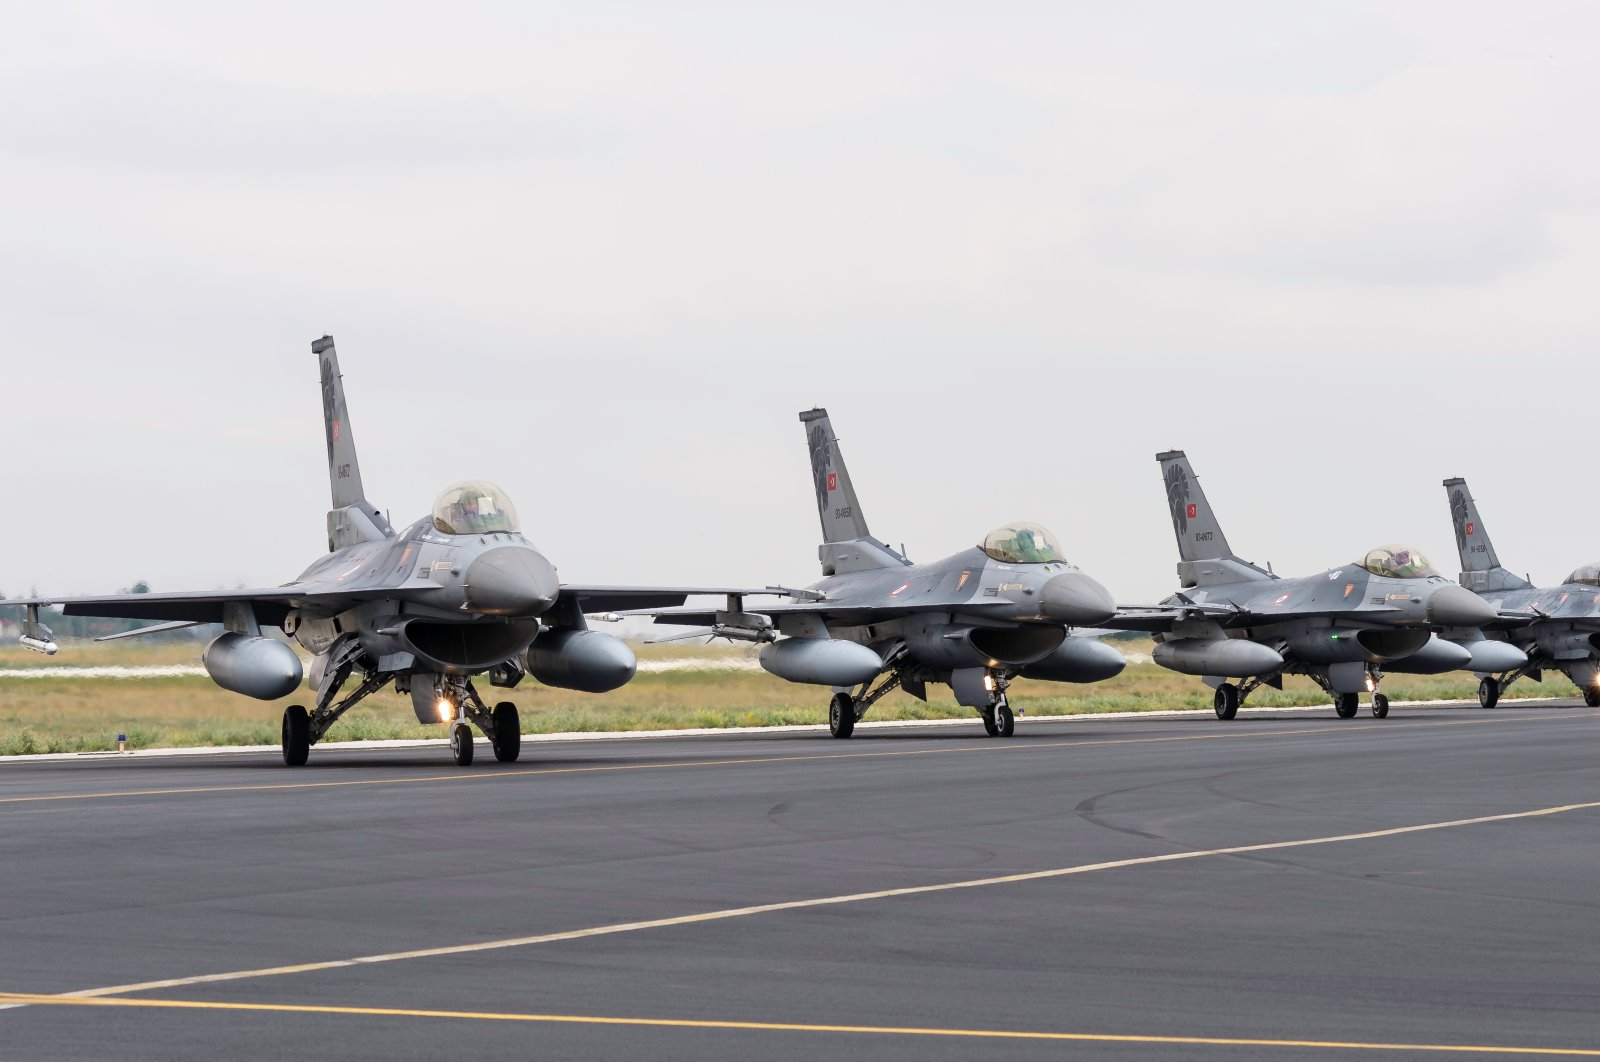 Several F-16s of the Turkish Air Forces Command gather for the Anatolian Eagle military exercise, Konya, central Turkey, June 8, 2016. (Shutterstock Photo)